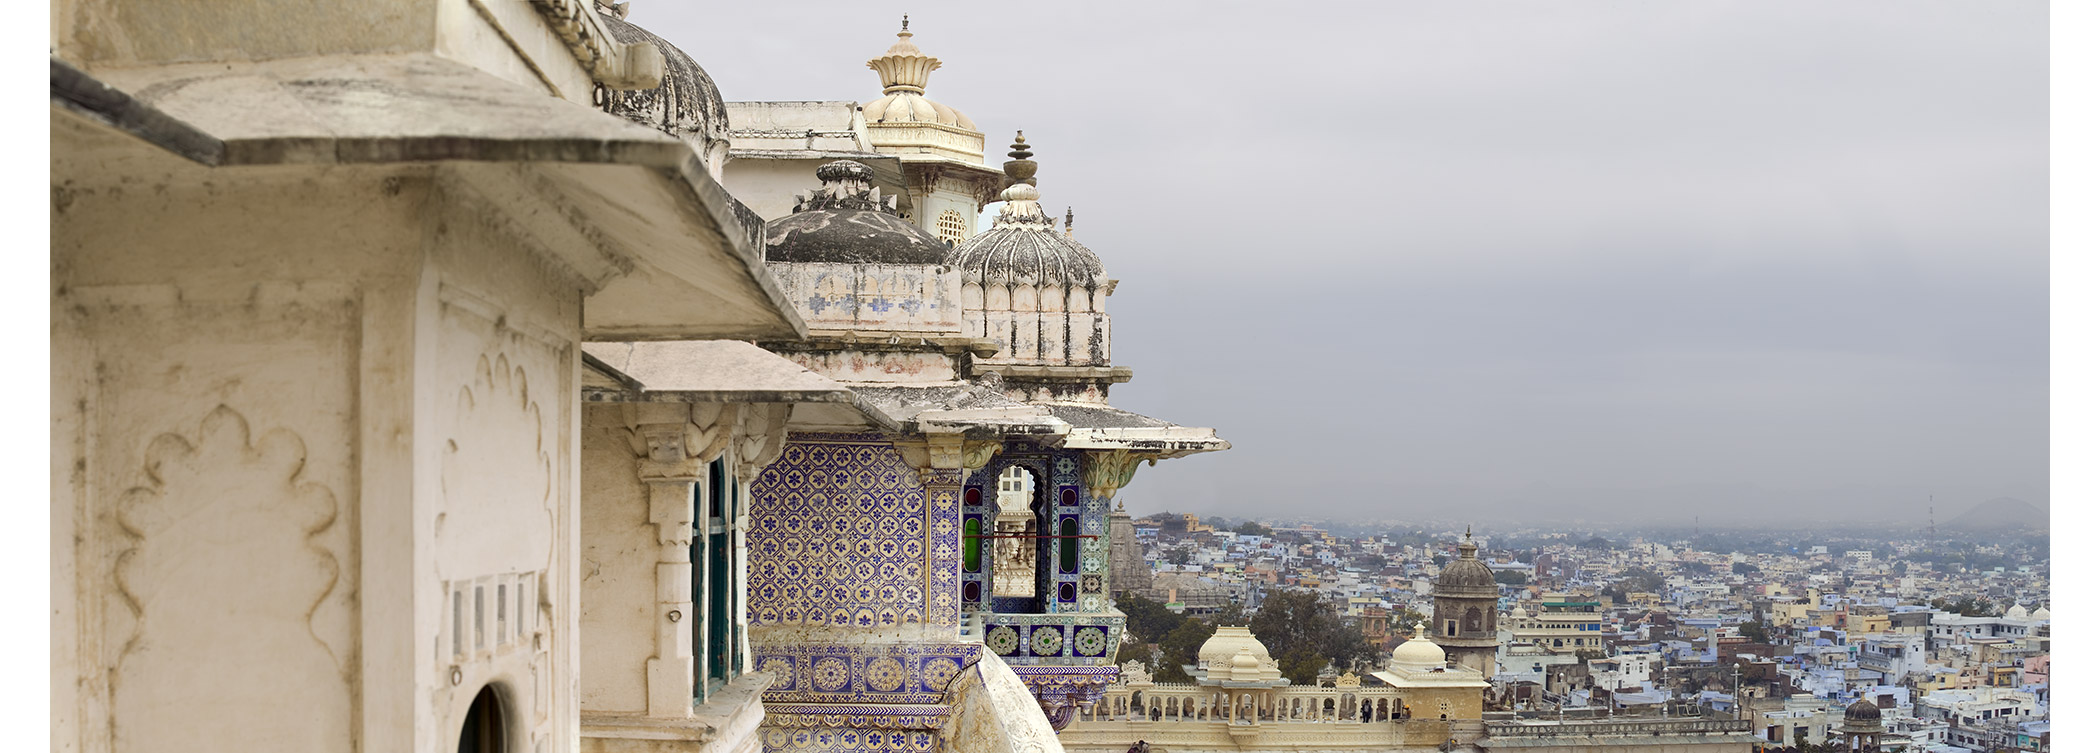 Paul Grundy. City Palace Udaipur 2